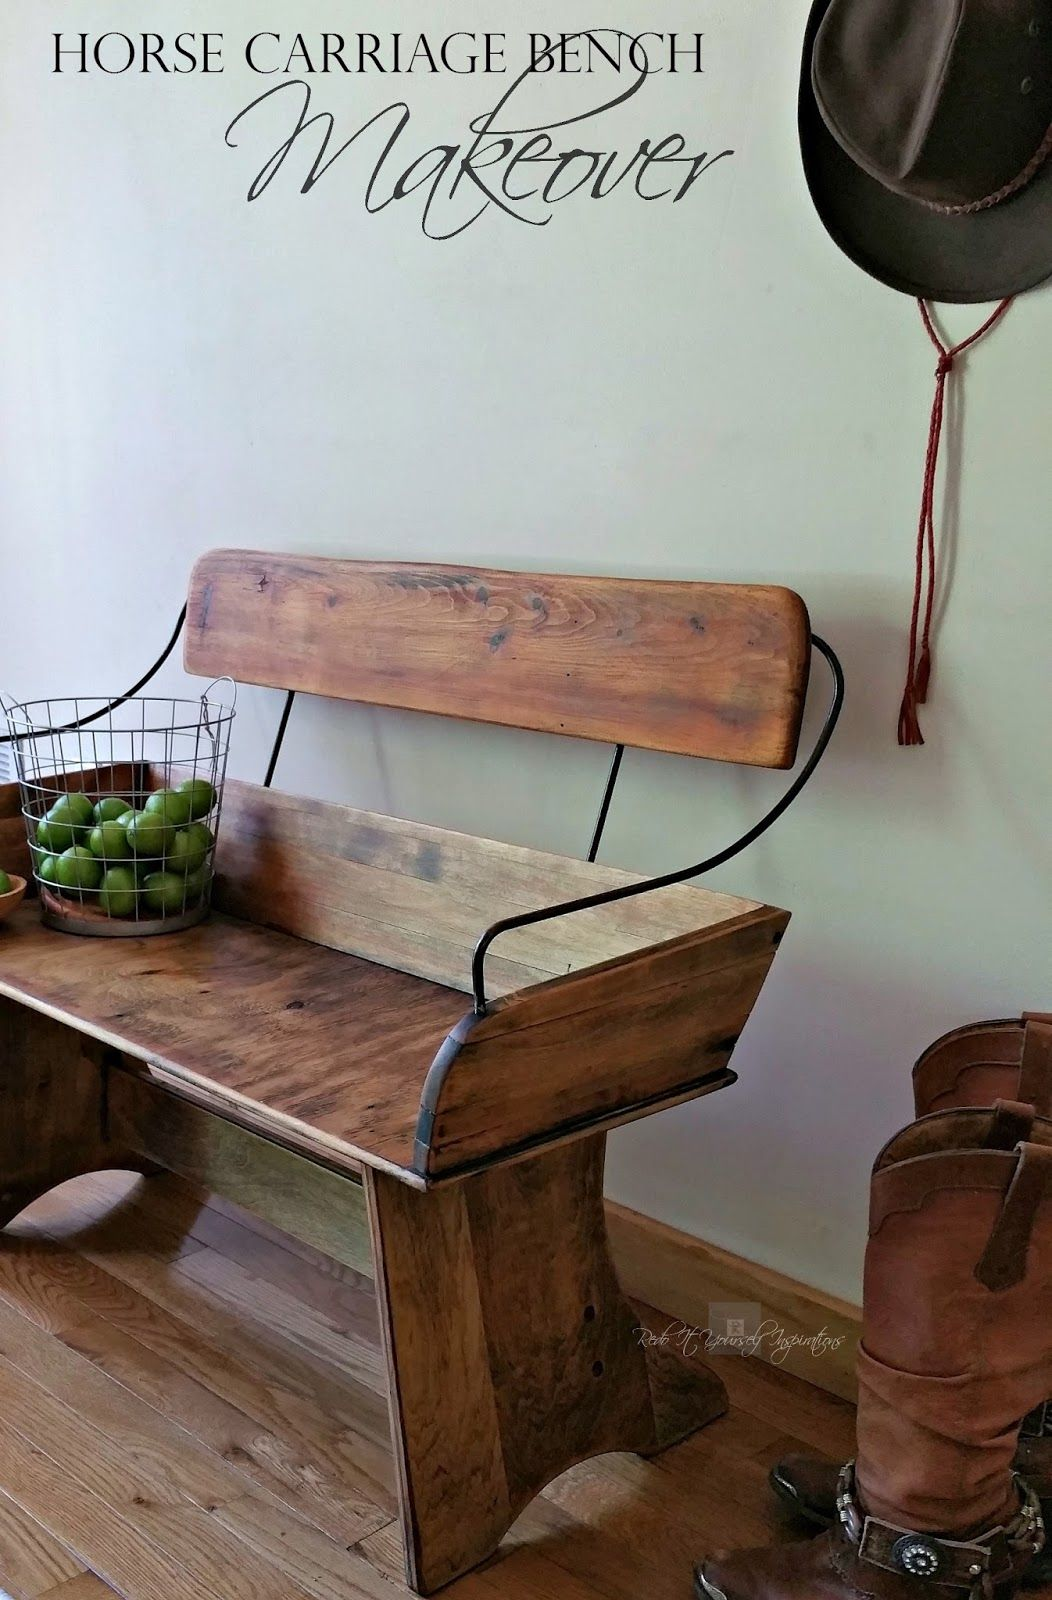 Horse Carriage Bench Seat Makeover | Redo It Yourself Inspirations : Horse Carriage Bench Seat Makeover